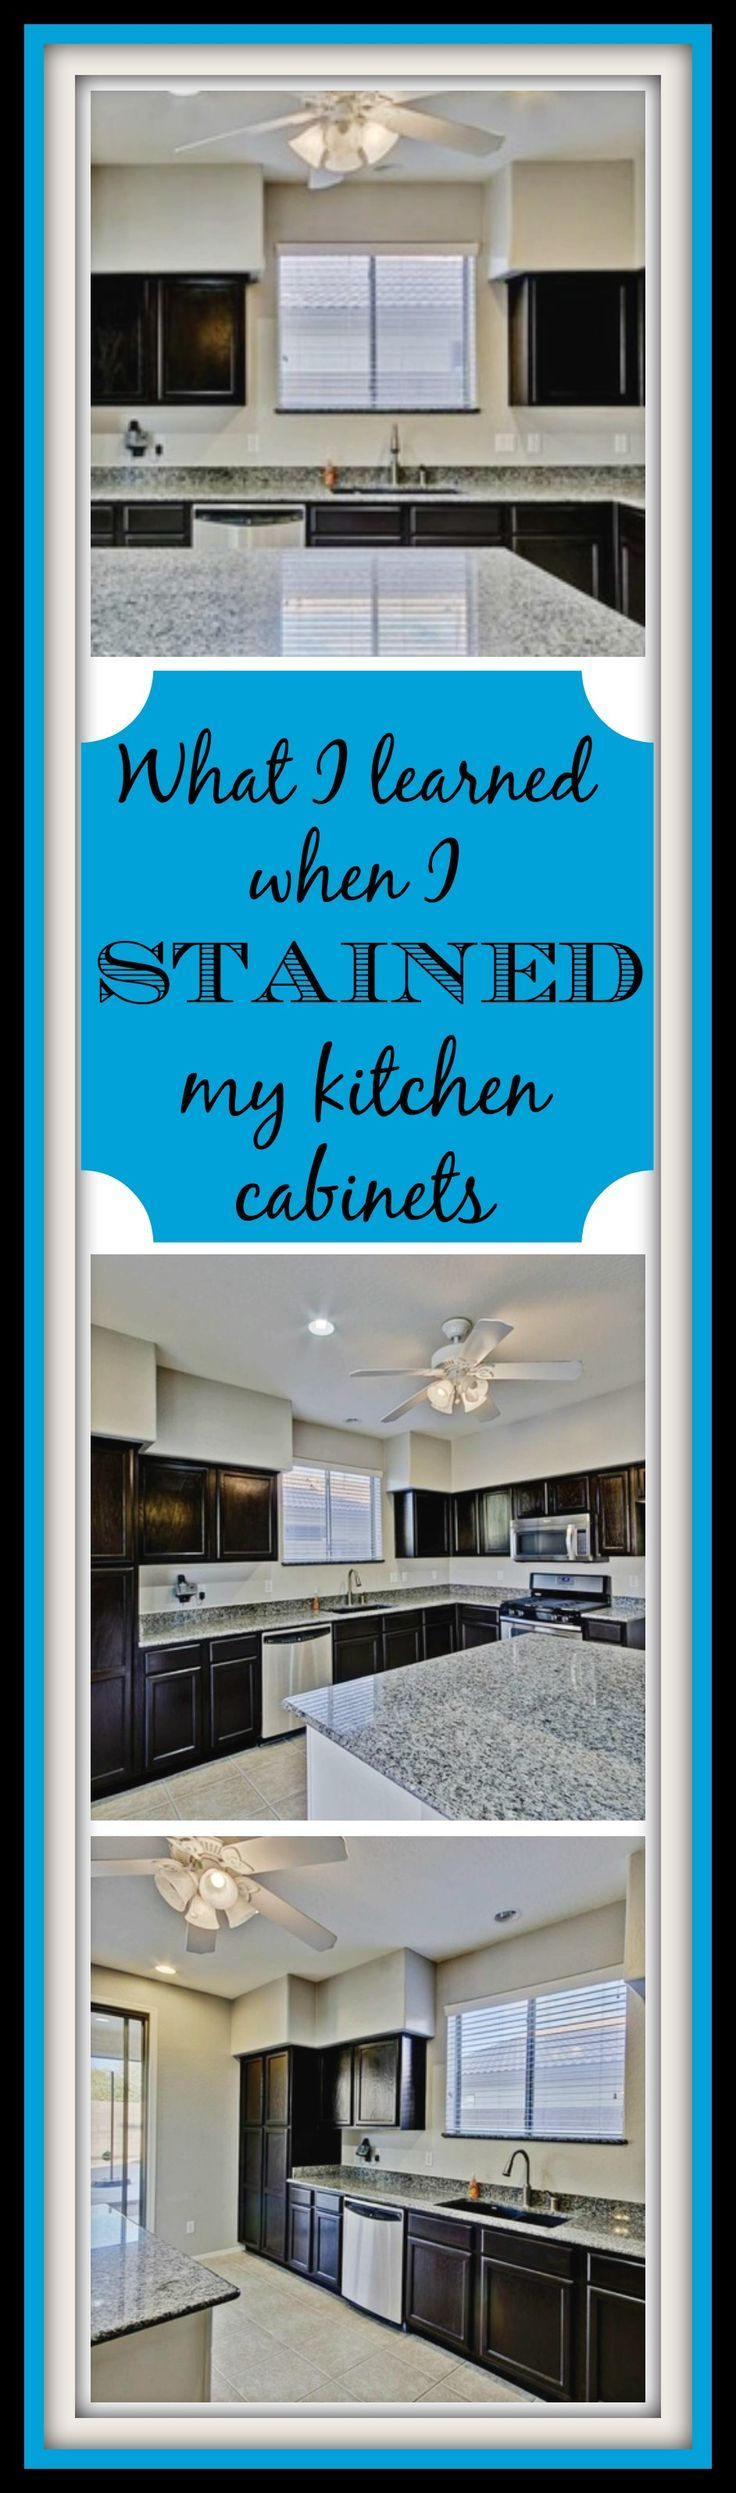 Can i use kitchen cabinets in the bathroom - Best 25 Stain Kitchen Cabinets Ideas On Pinterest Staining Kitchen Cabinets Gel Stain Cabinets And How To Refinish Cabinets